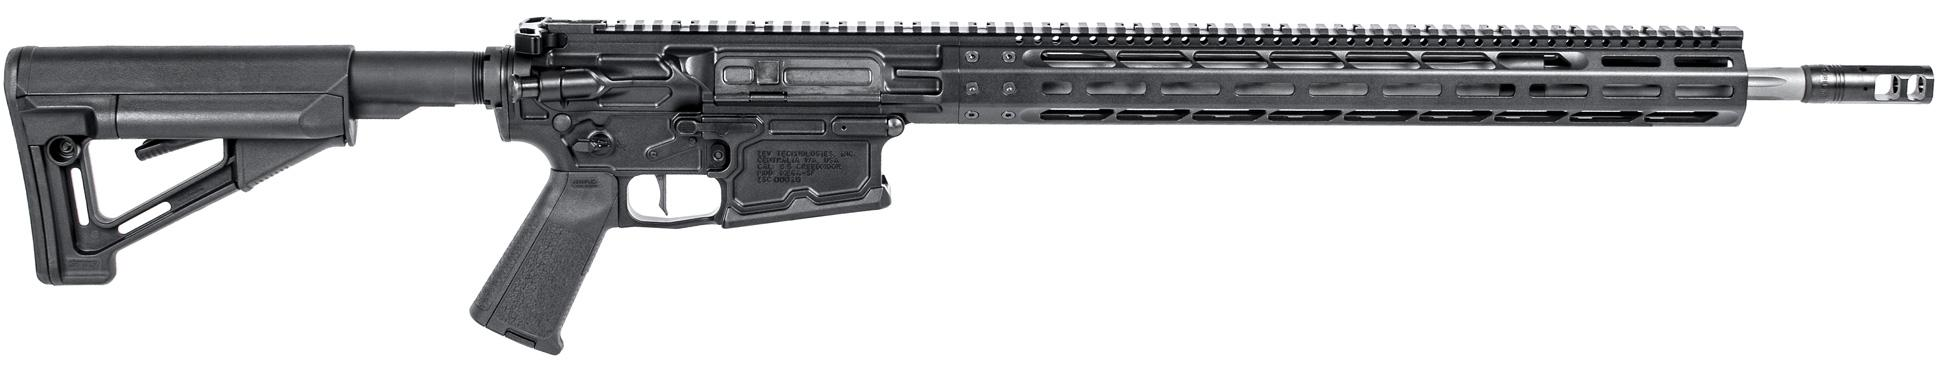 New ZEV Tech Small Frame Rifle